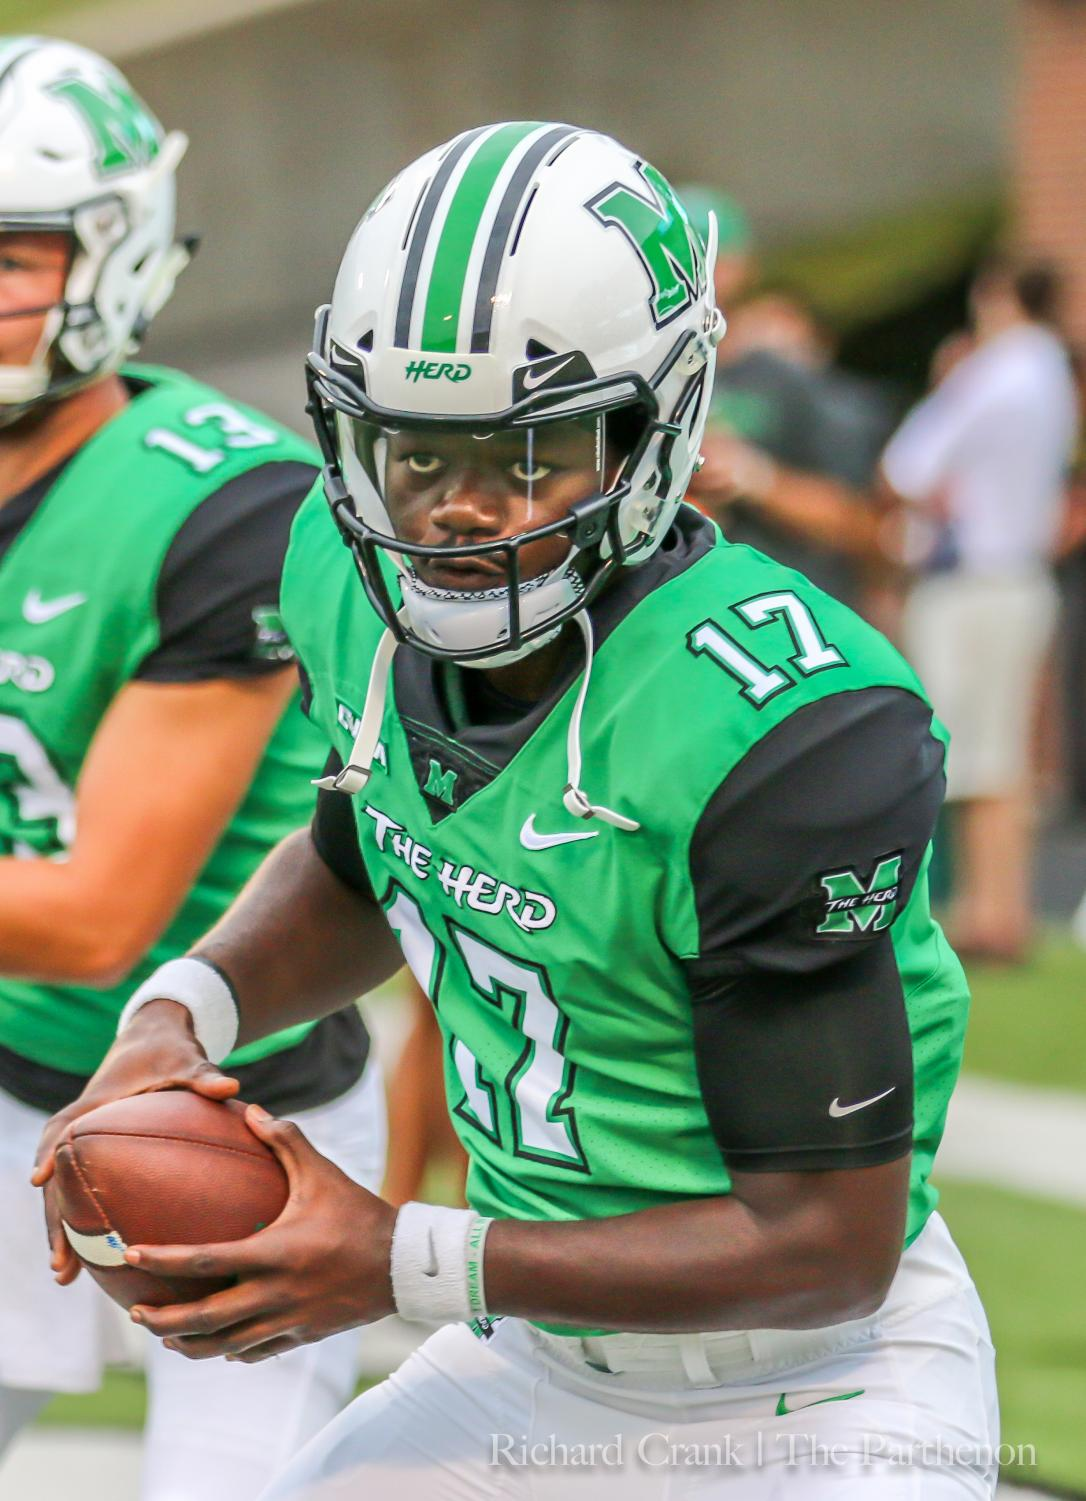 Redshirt freshman quarterback Isaiah Green warms up before Marshall's home opener. Green is the youngest Marshall starting quarterback since Rakeem Cato in 2014.